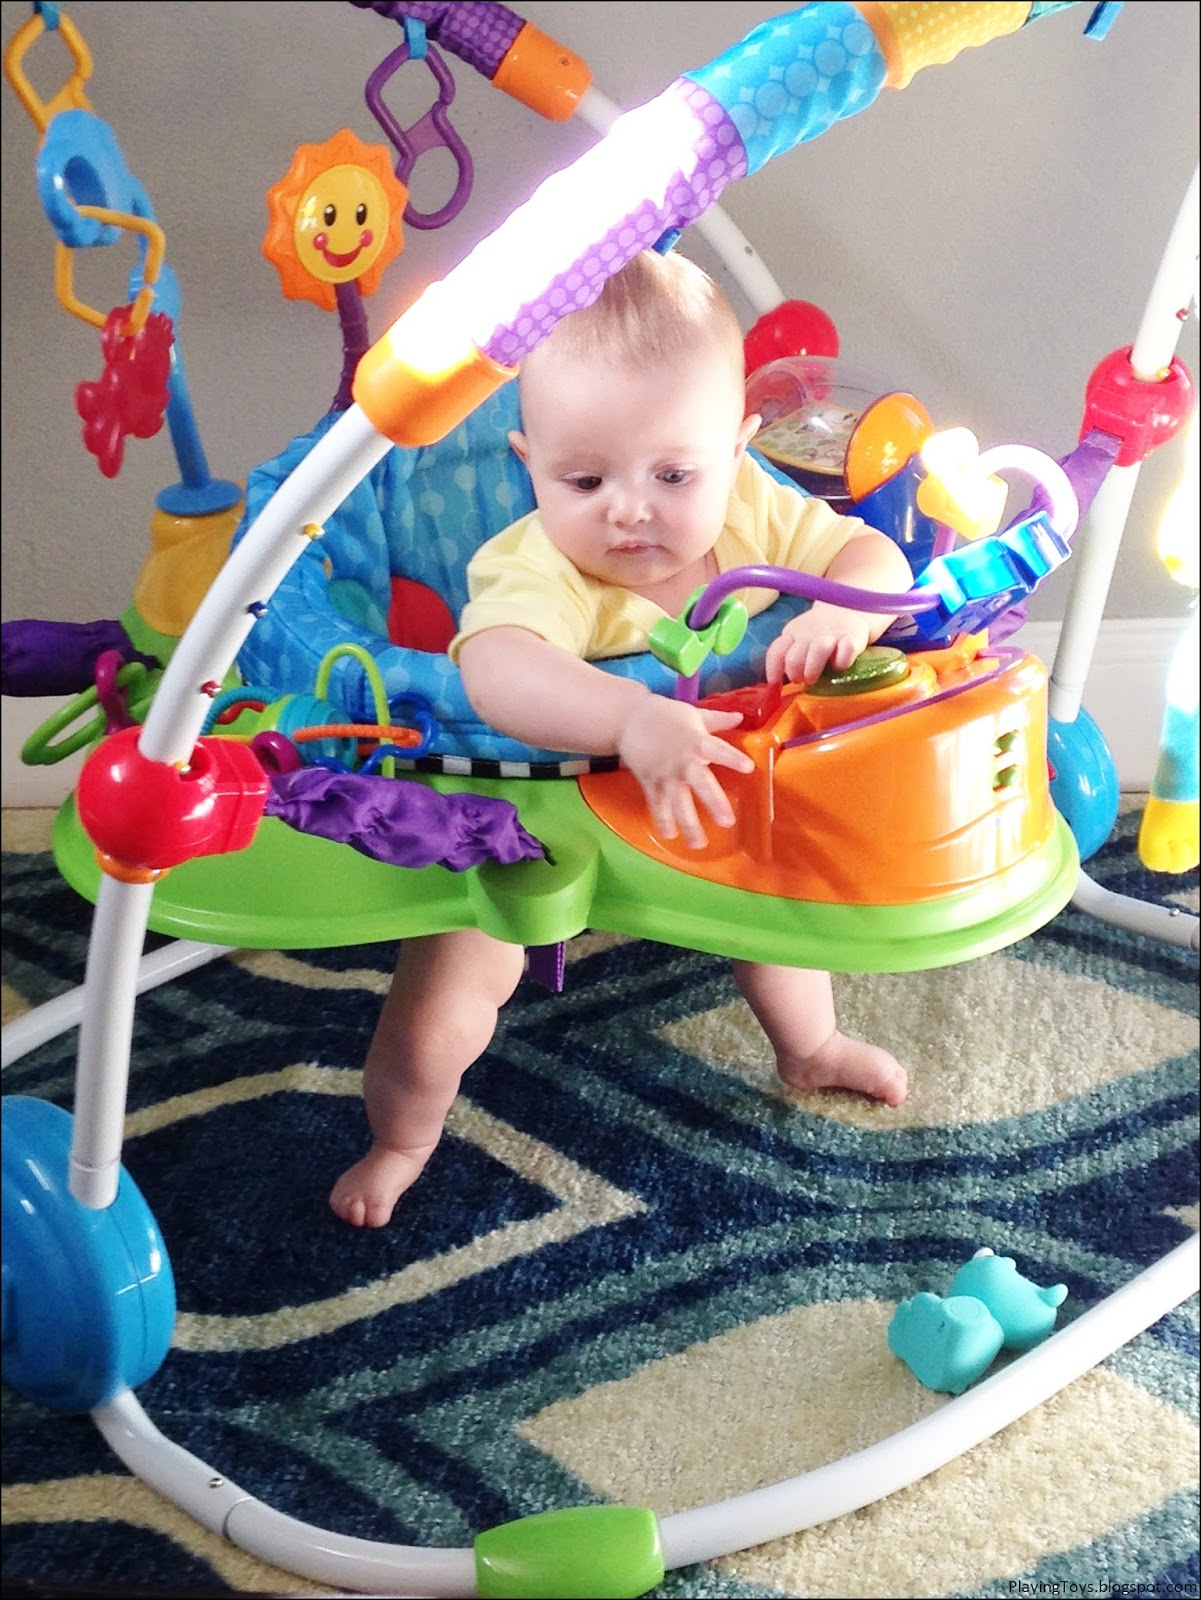 Toys For 4 Month Old Baby : Month old baby toys